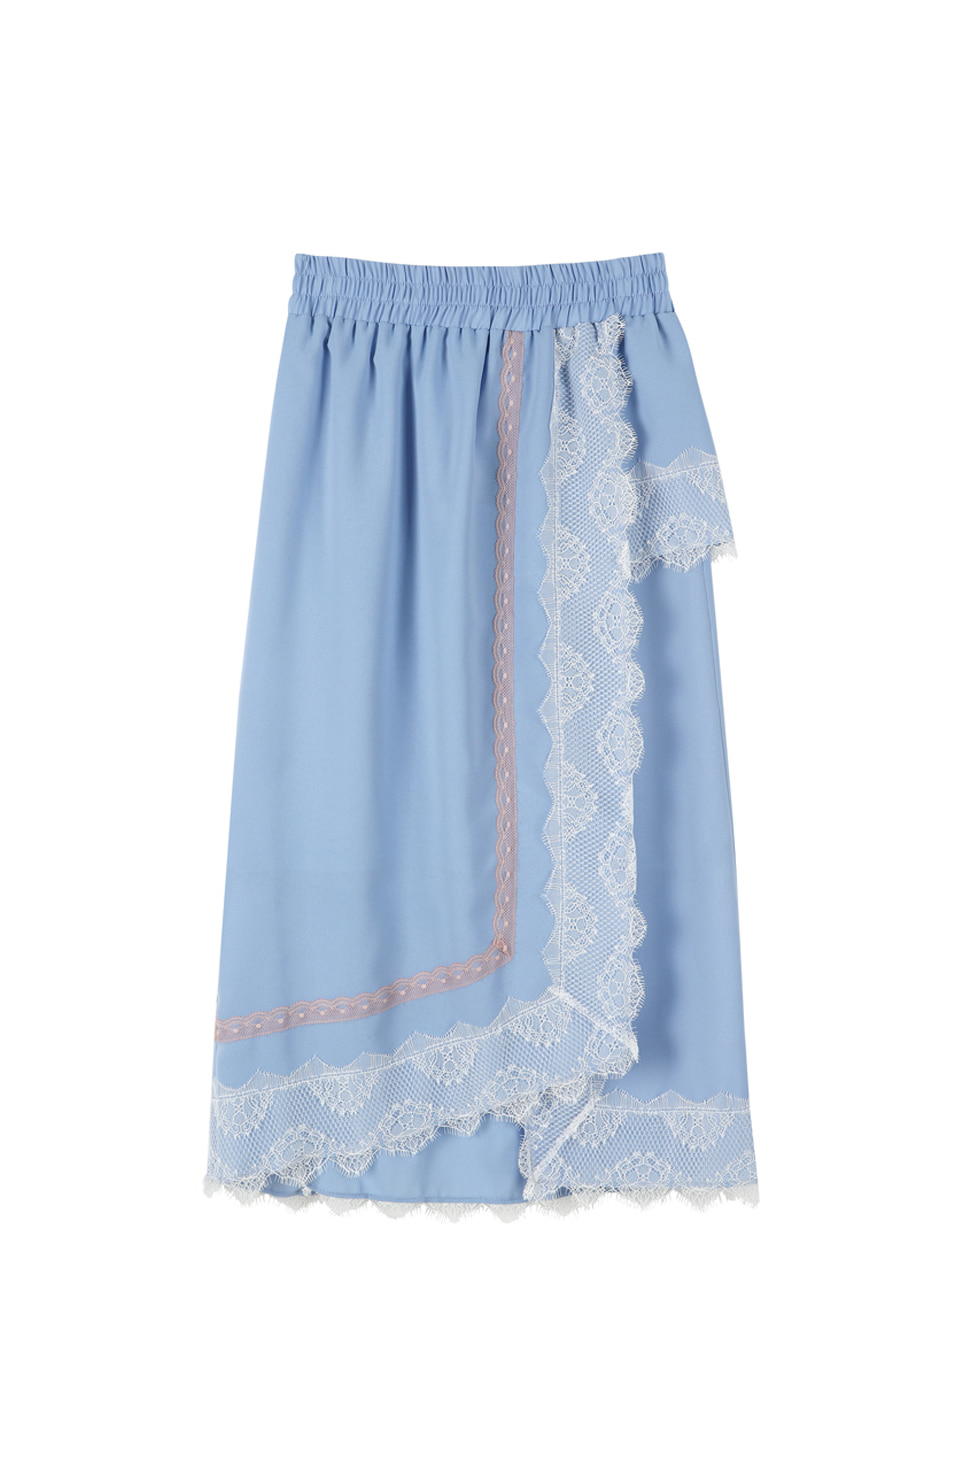 LACE SKIRT - BLUE